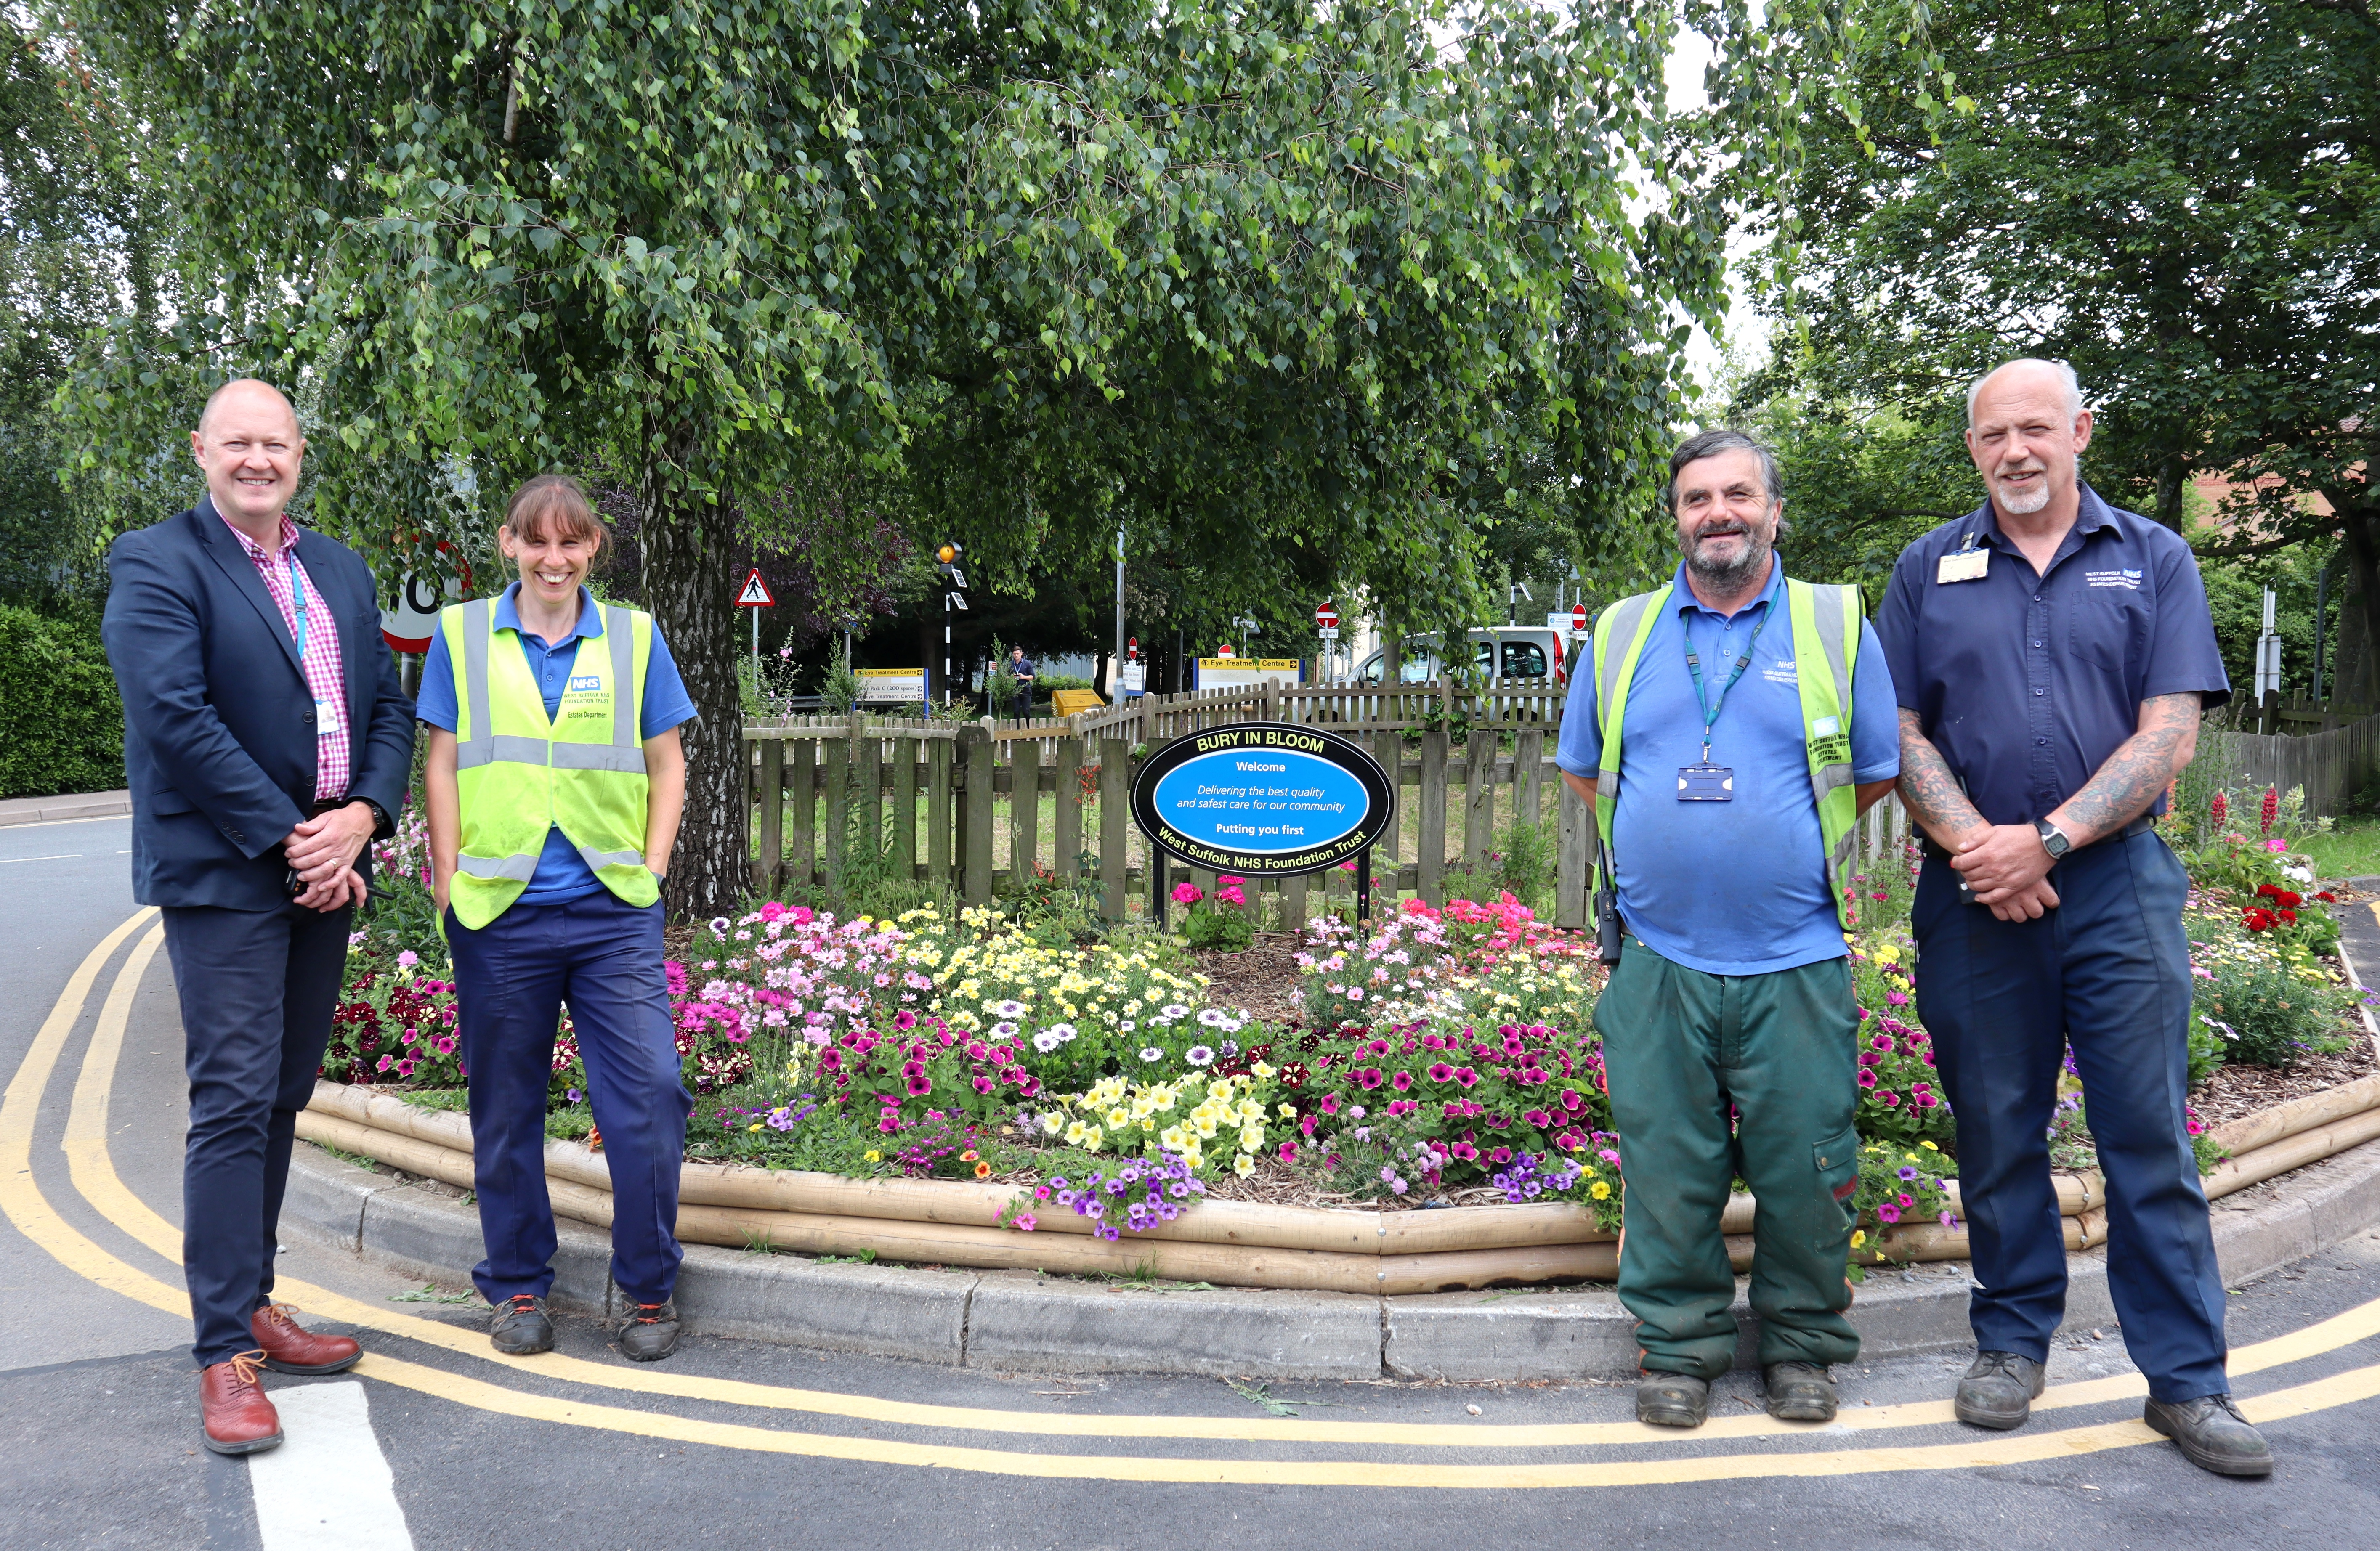 L-R Gary Stannard, estates operations maintenance manager, Sarah Dance, gardener, David Cracknell, gardener, and Ian Purt, builder - the WSFT team behind the blooms